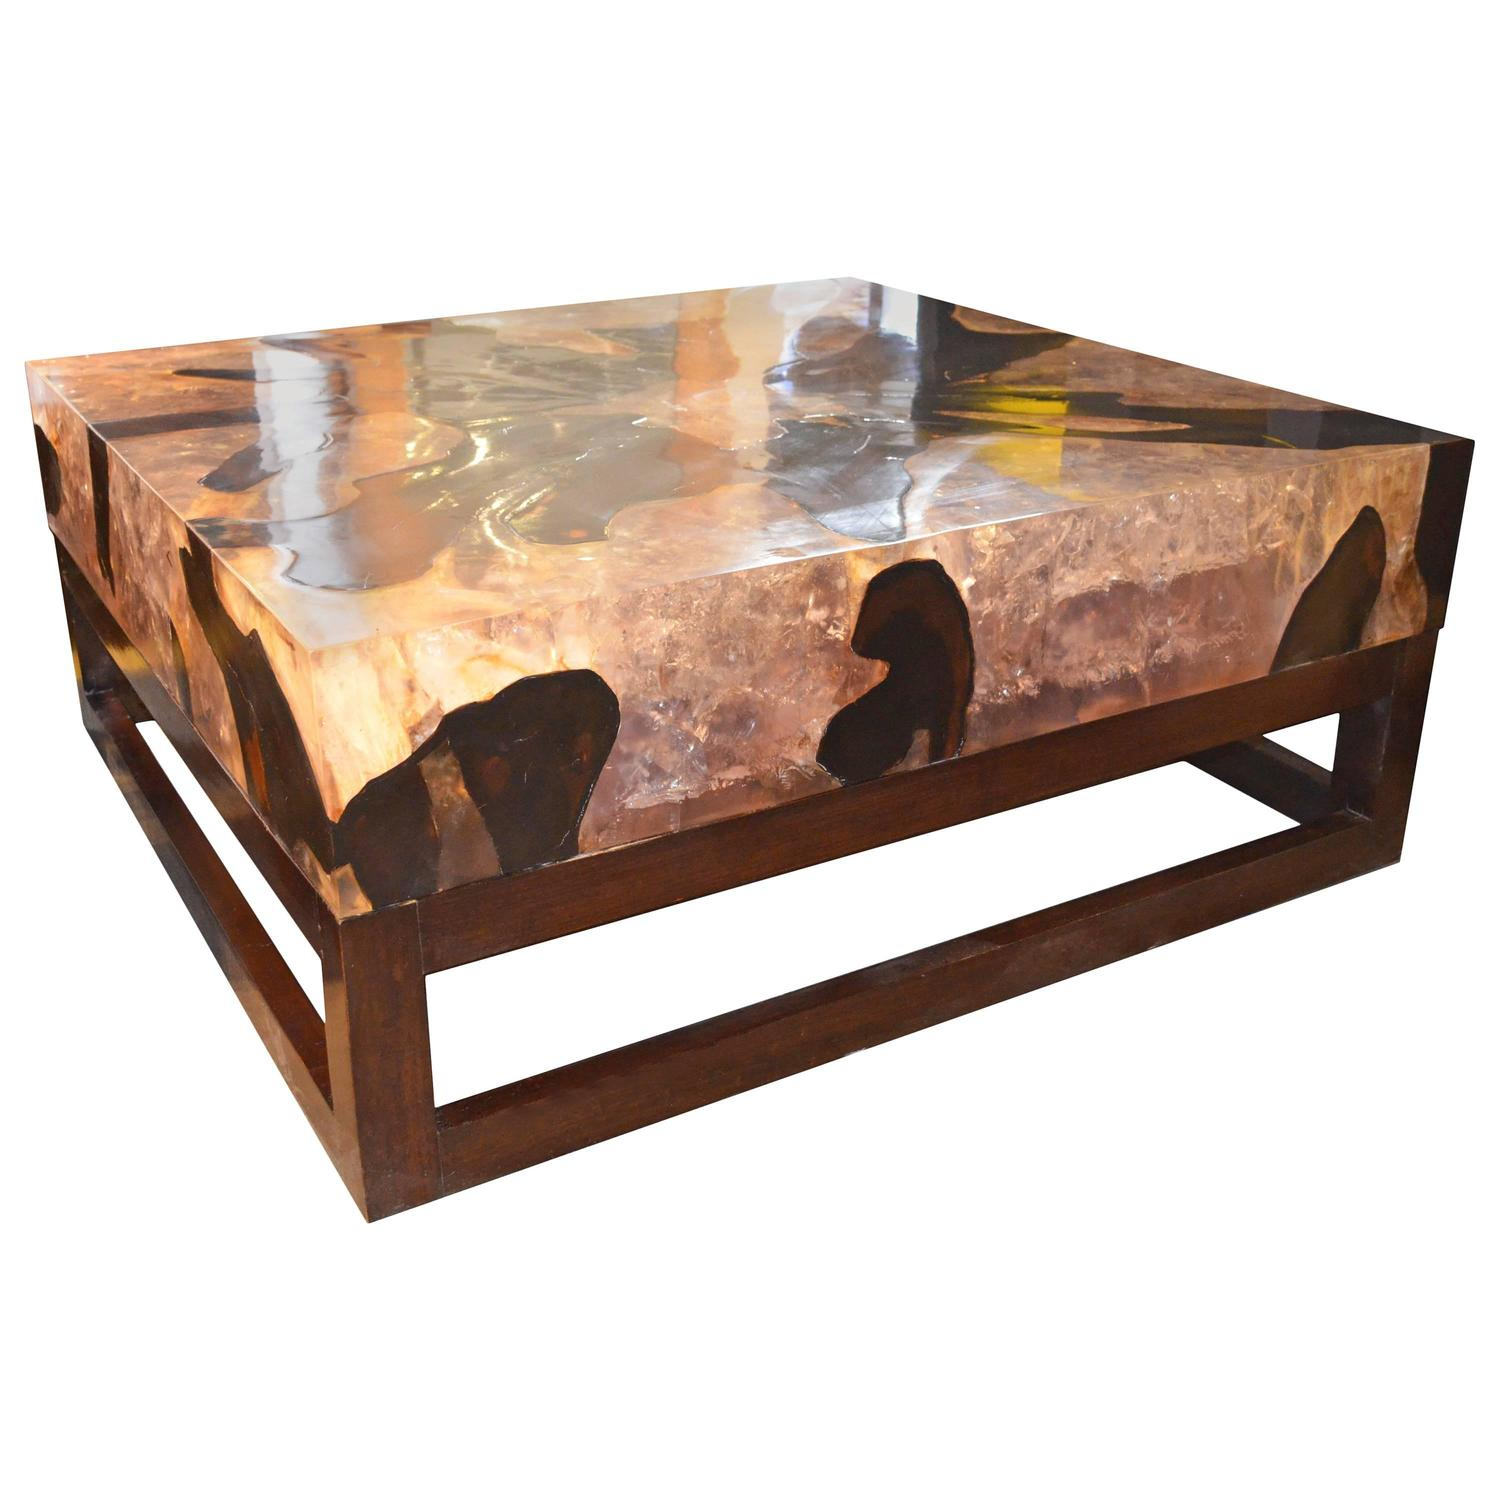 Resin Coffee and Cocktail Tables 159 For Sale at 1stdibs